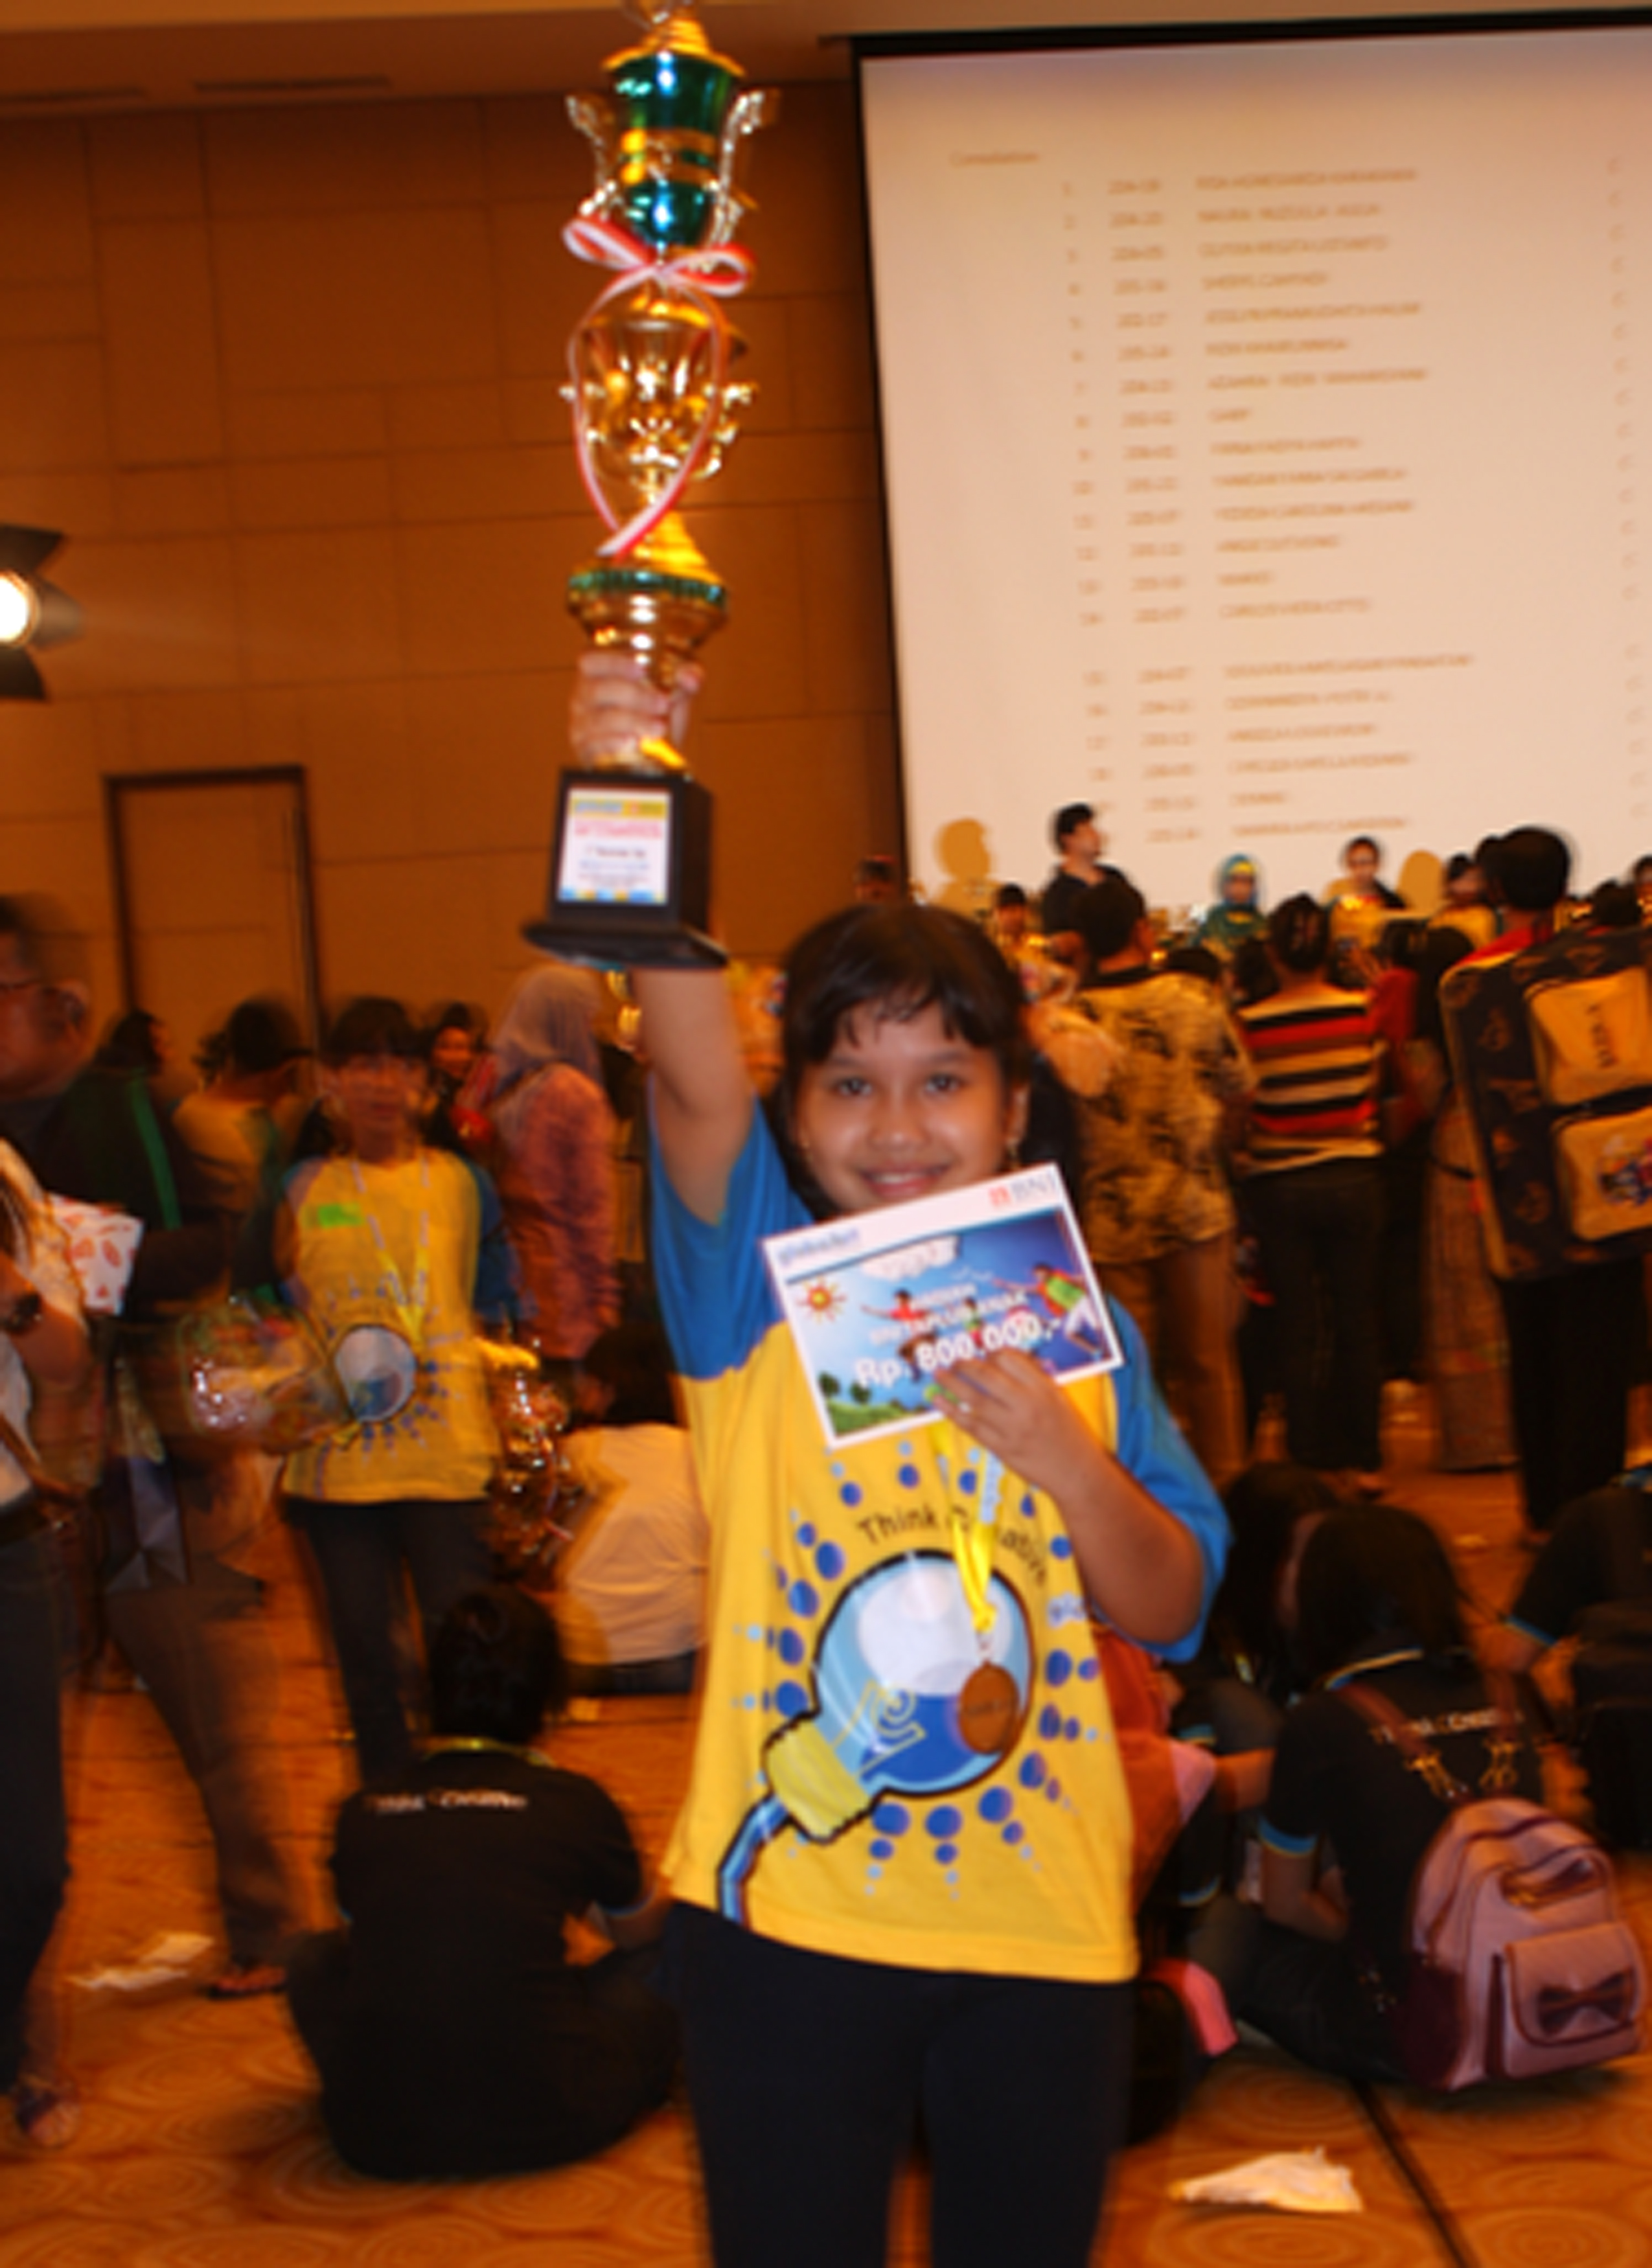 Ruth bangga menjadi juara 1st runner up art competition 2012 kategori B